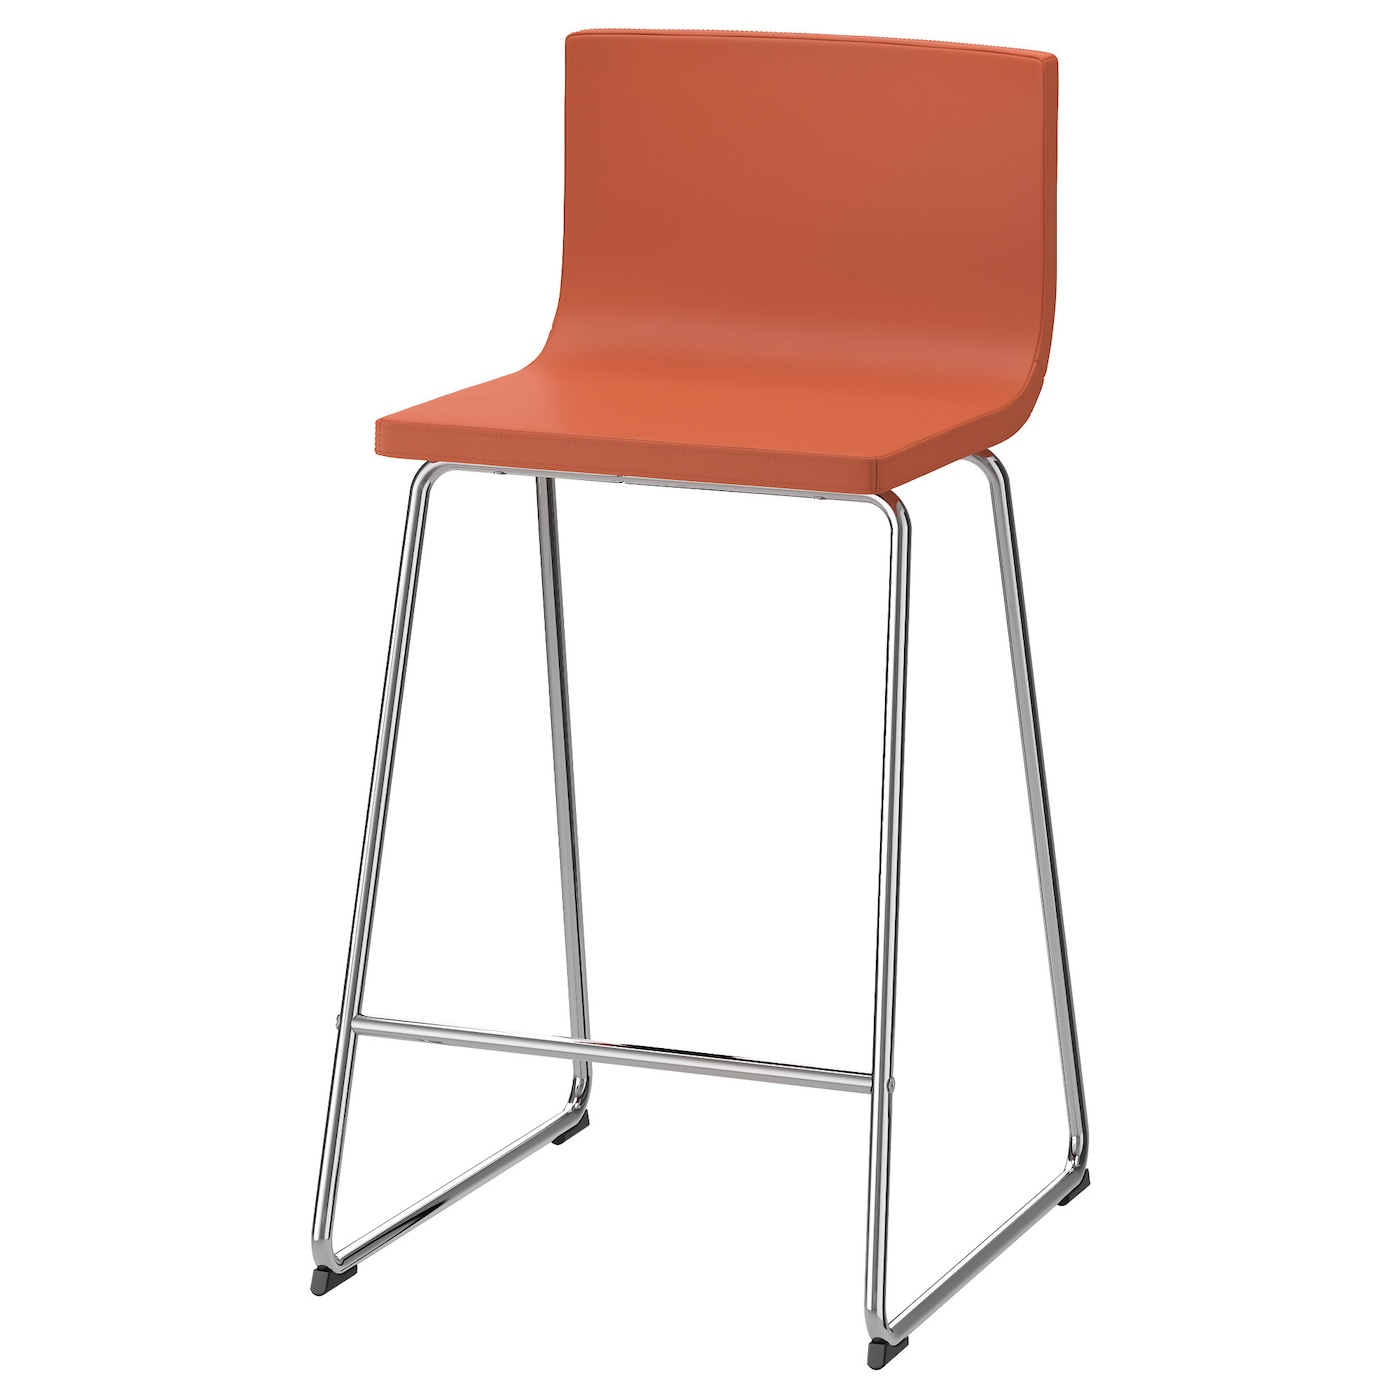 Bernhard bar stool with backrest chrome plated mjuk orange for Barhocker 90 ikea